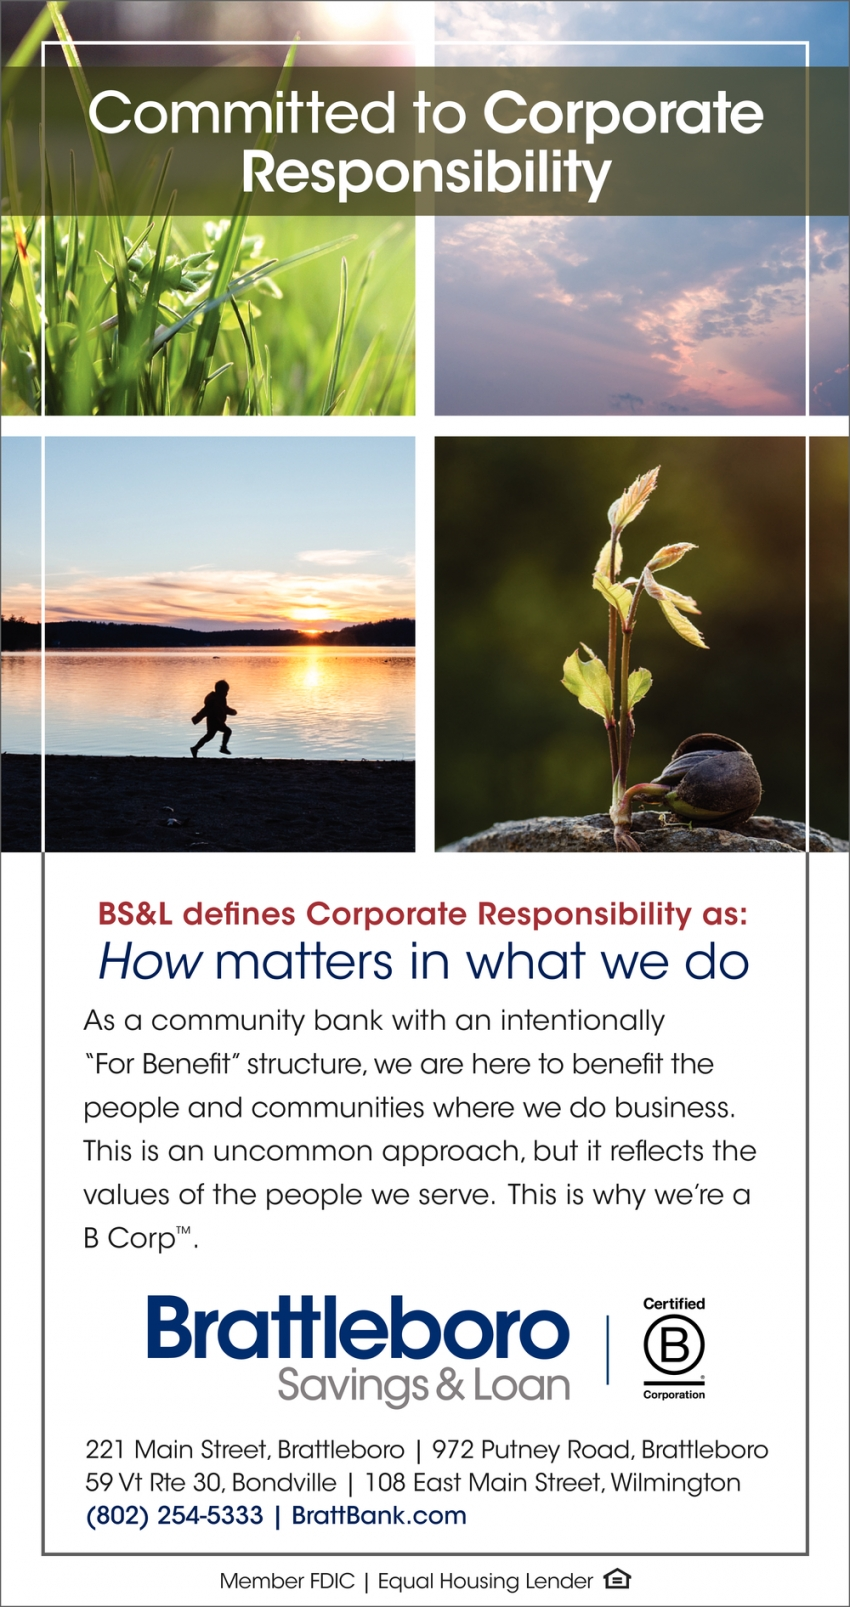 Committed to Corporate Responsibility